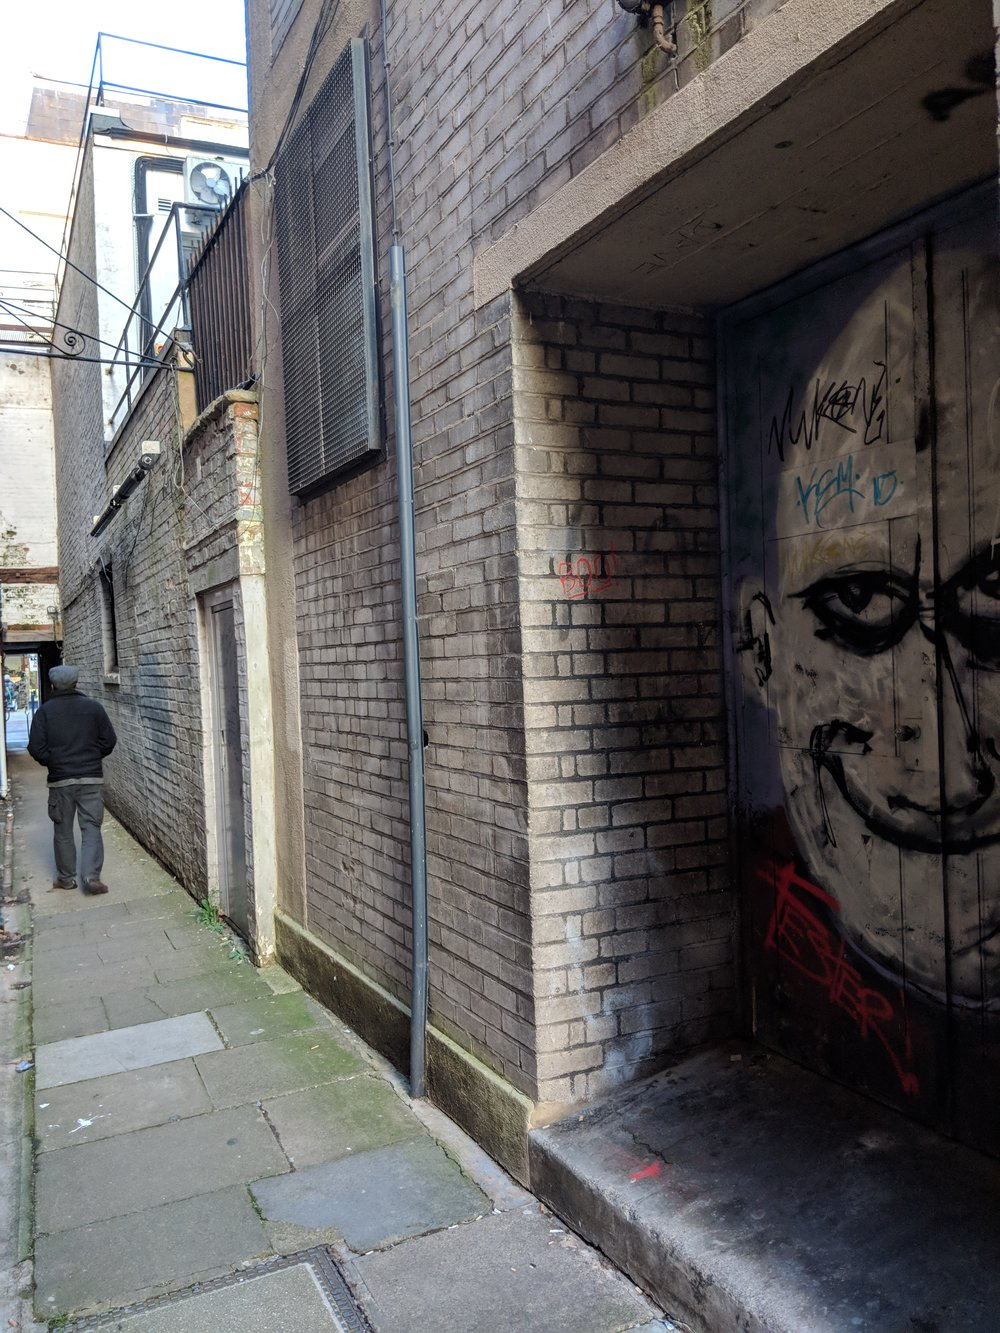 Pinchbelly Alley